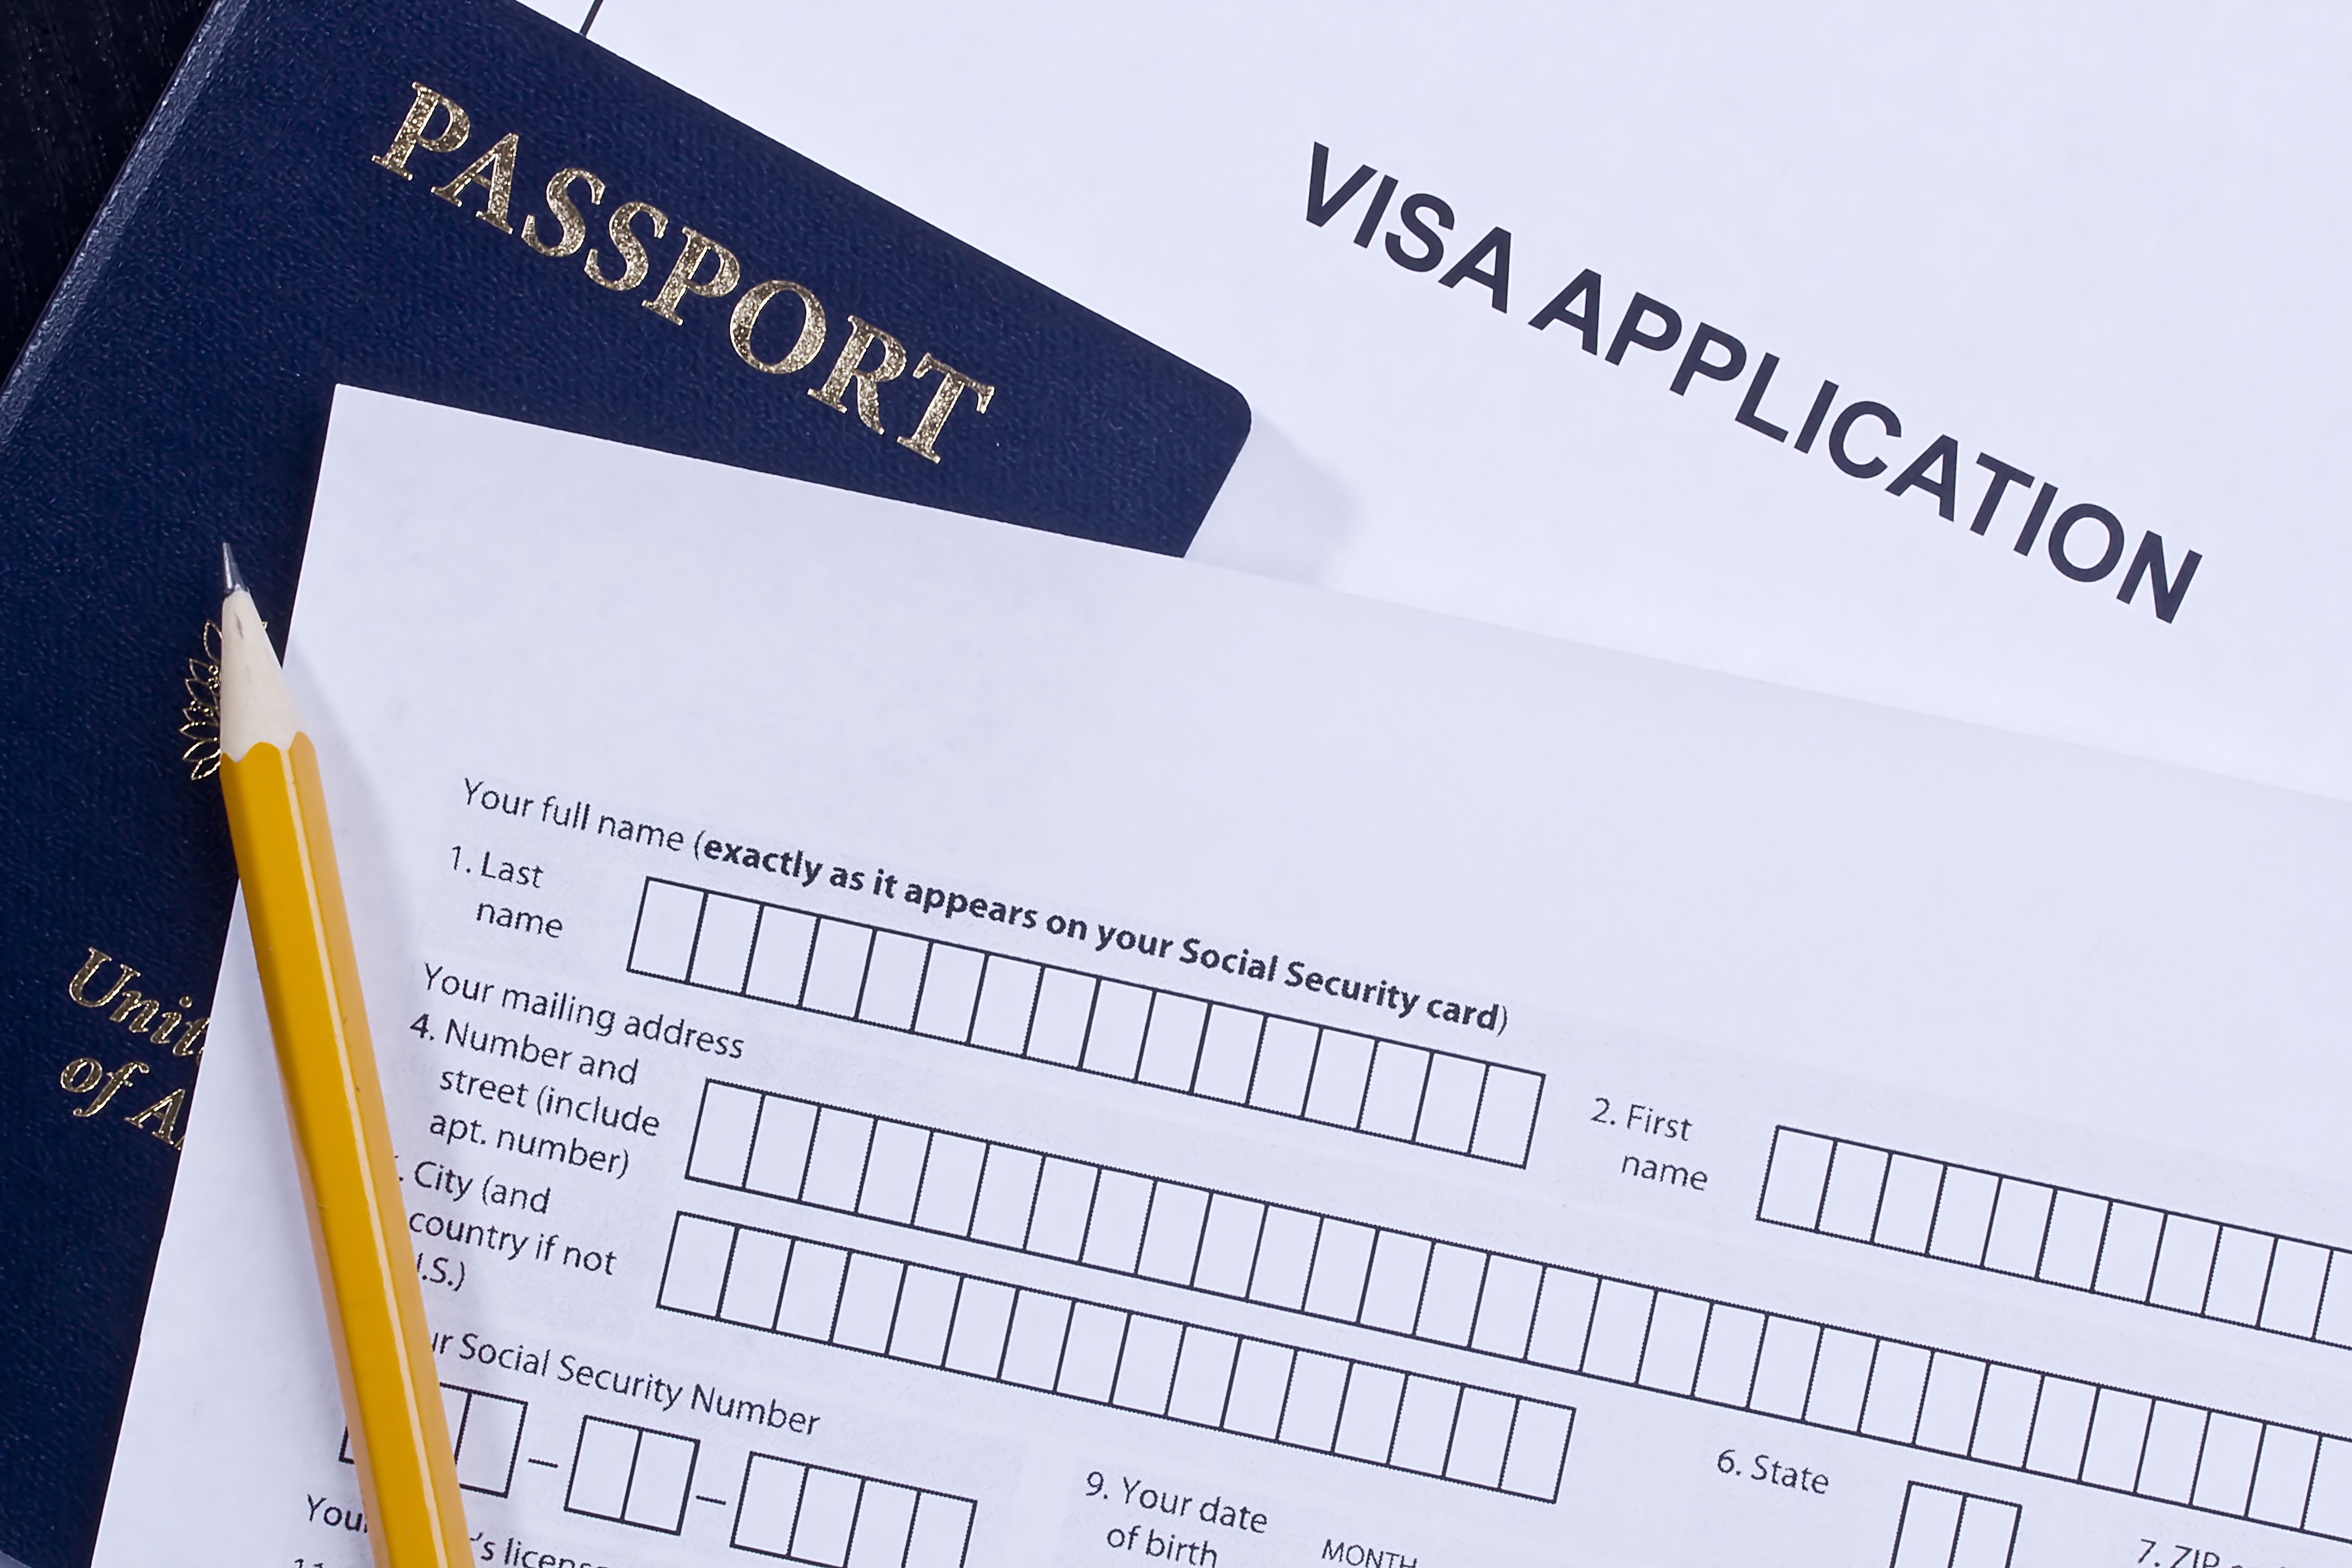 fef0fad2971a134d4f368aba5bad34f7 - How Long Does A Nigerian Visa Take To Get